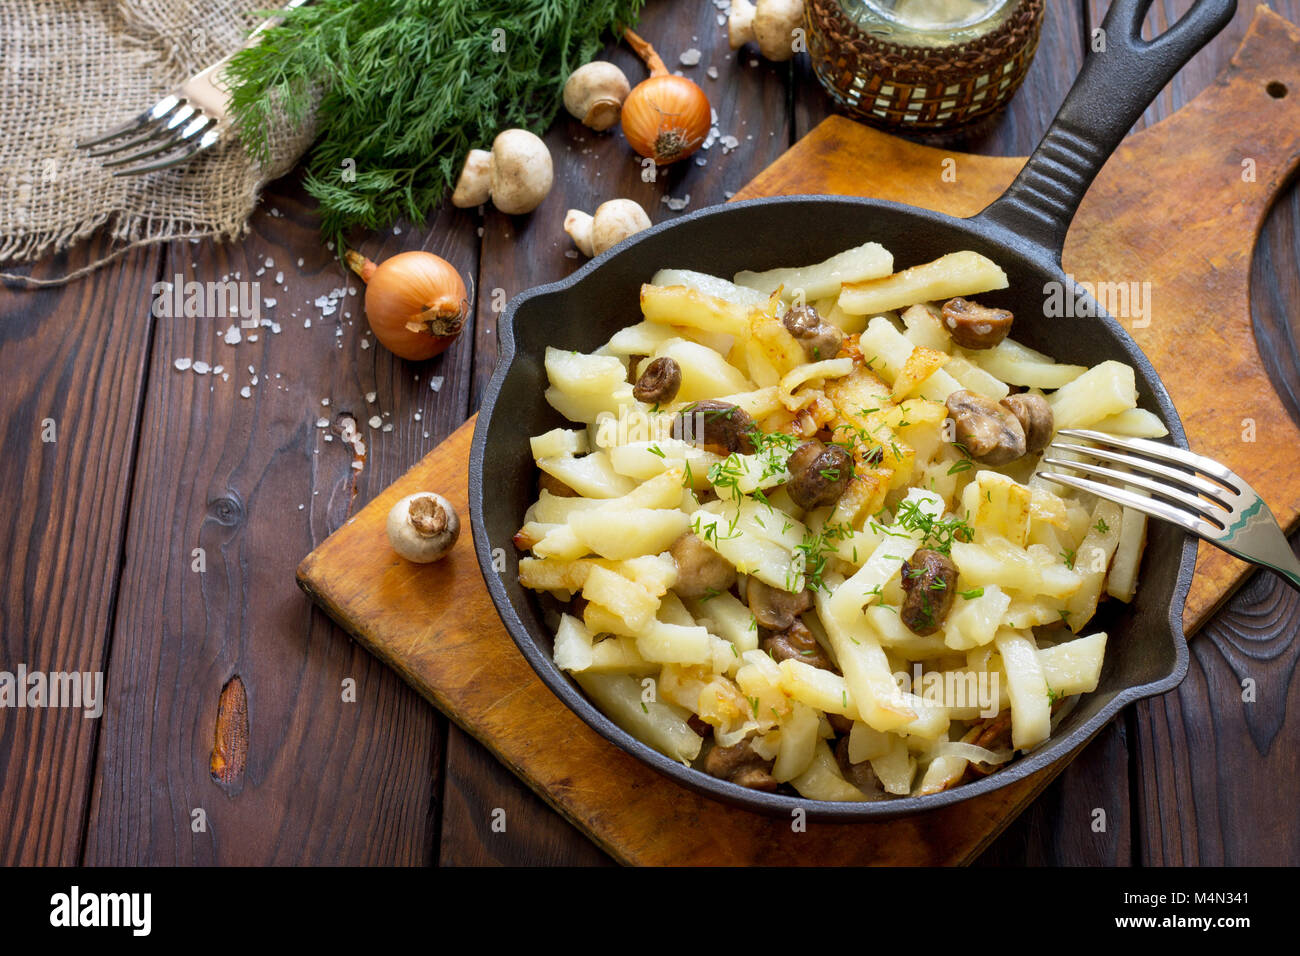 Fried Potatoes With Champignons Mushrooms On The Rustic